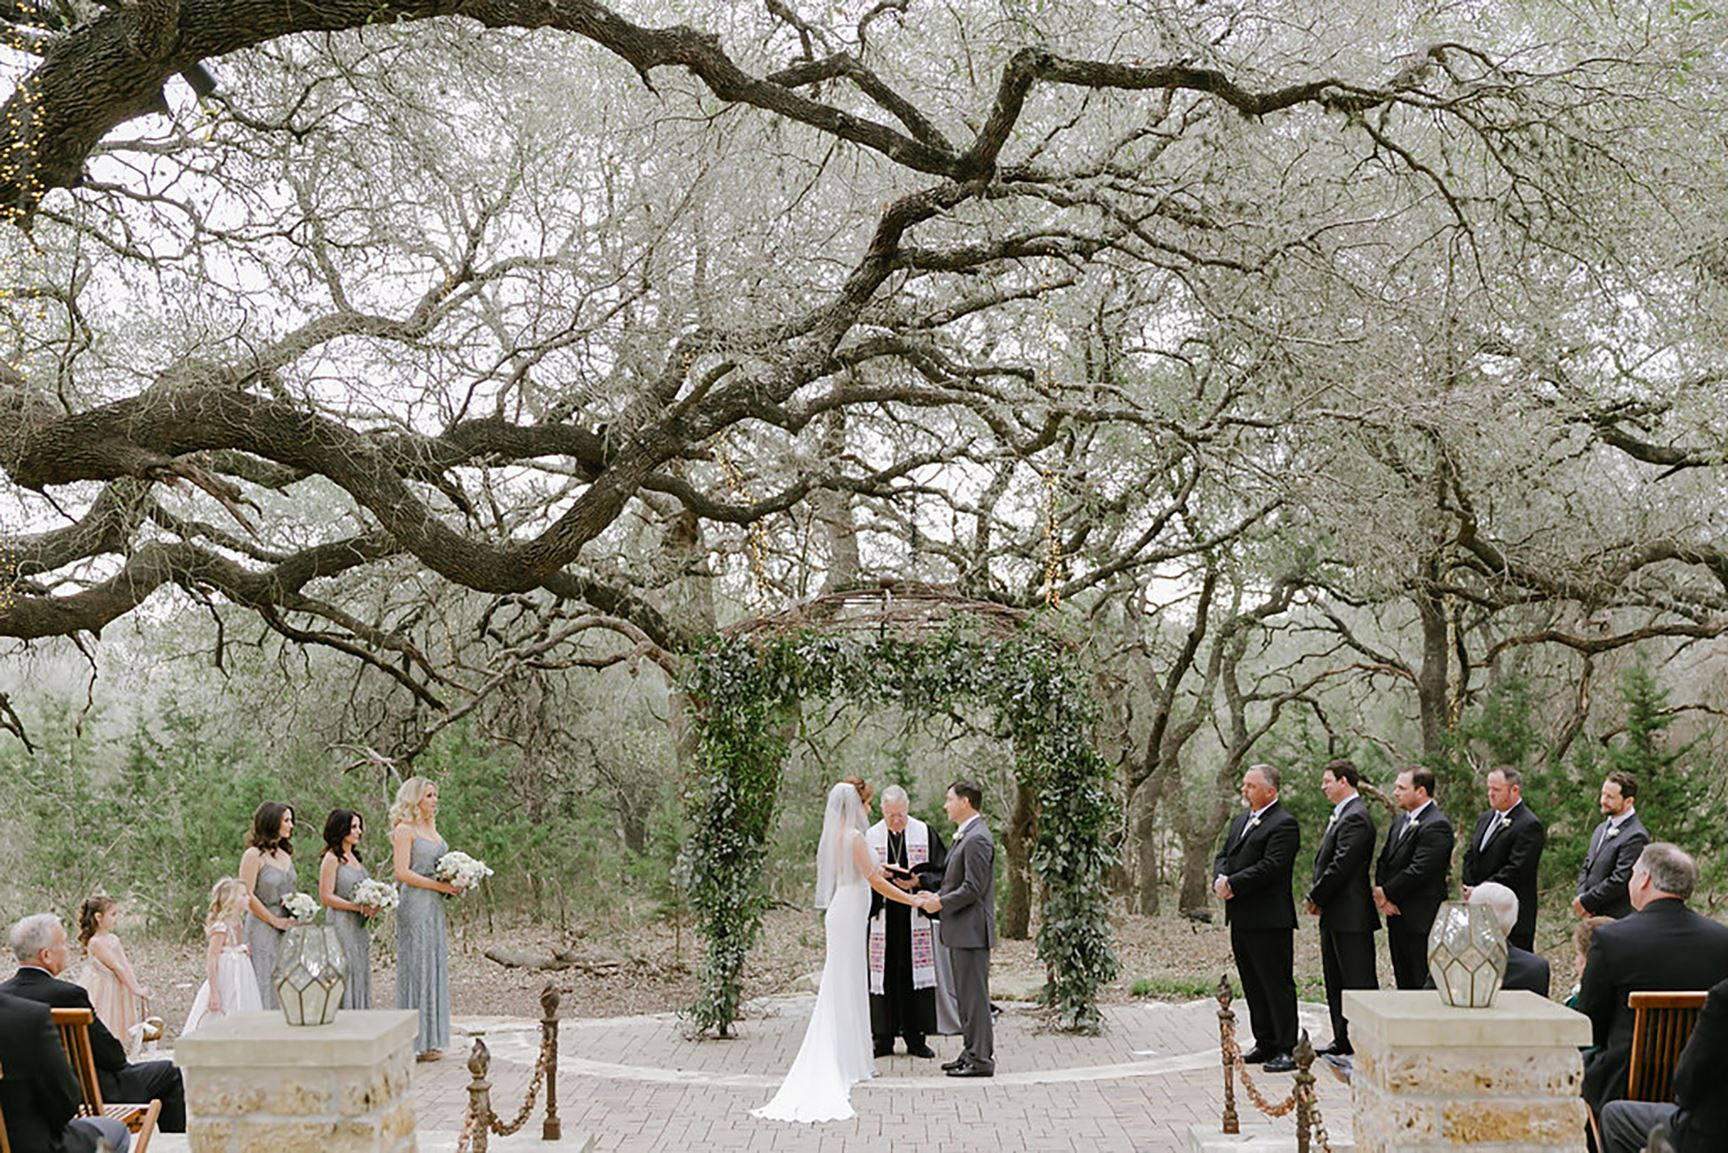 A man and a woman with a bridal party getting married underneath an oak tree in an outdoor ceremony